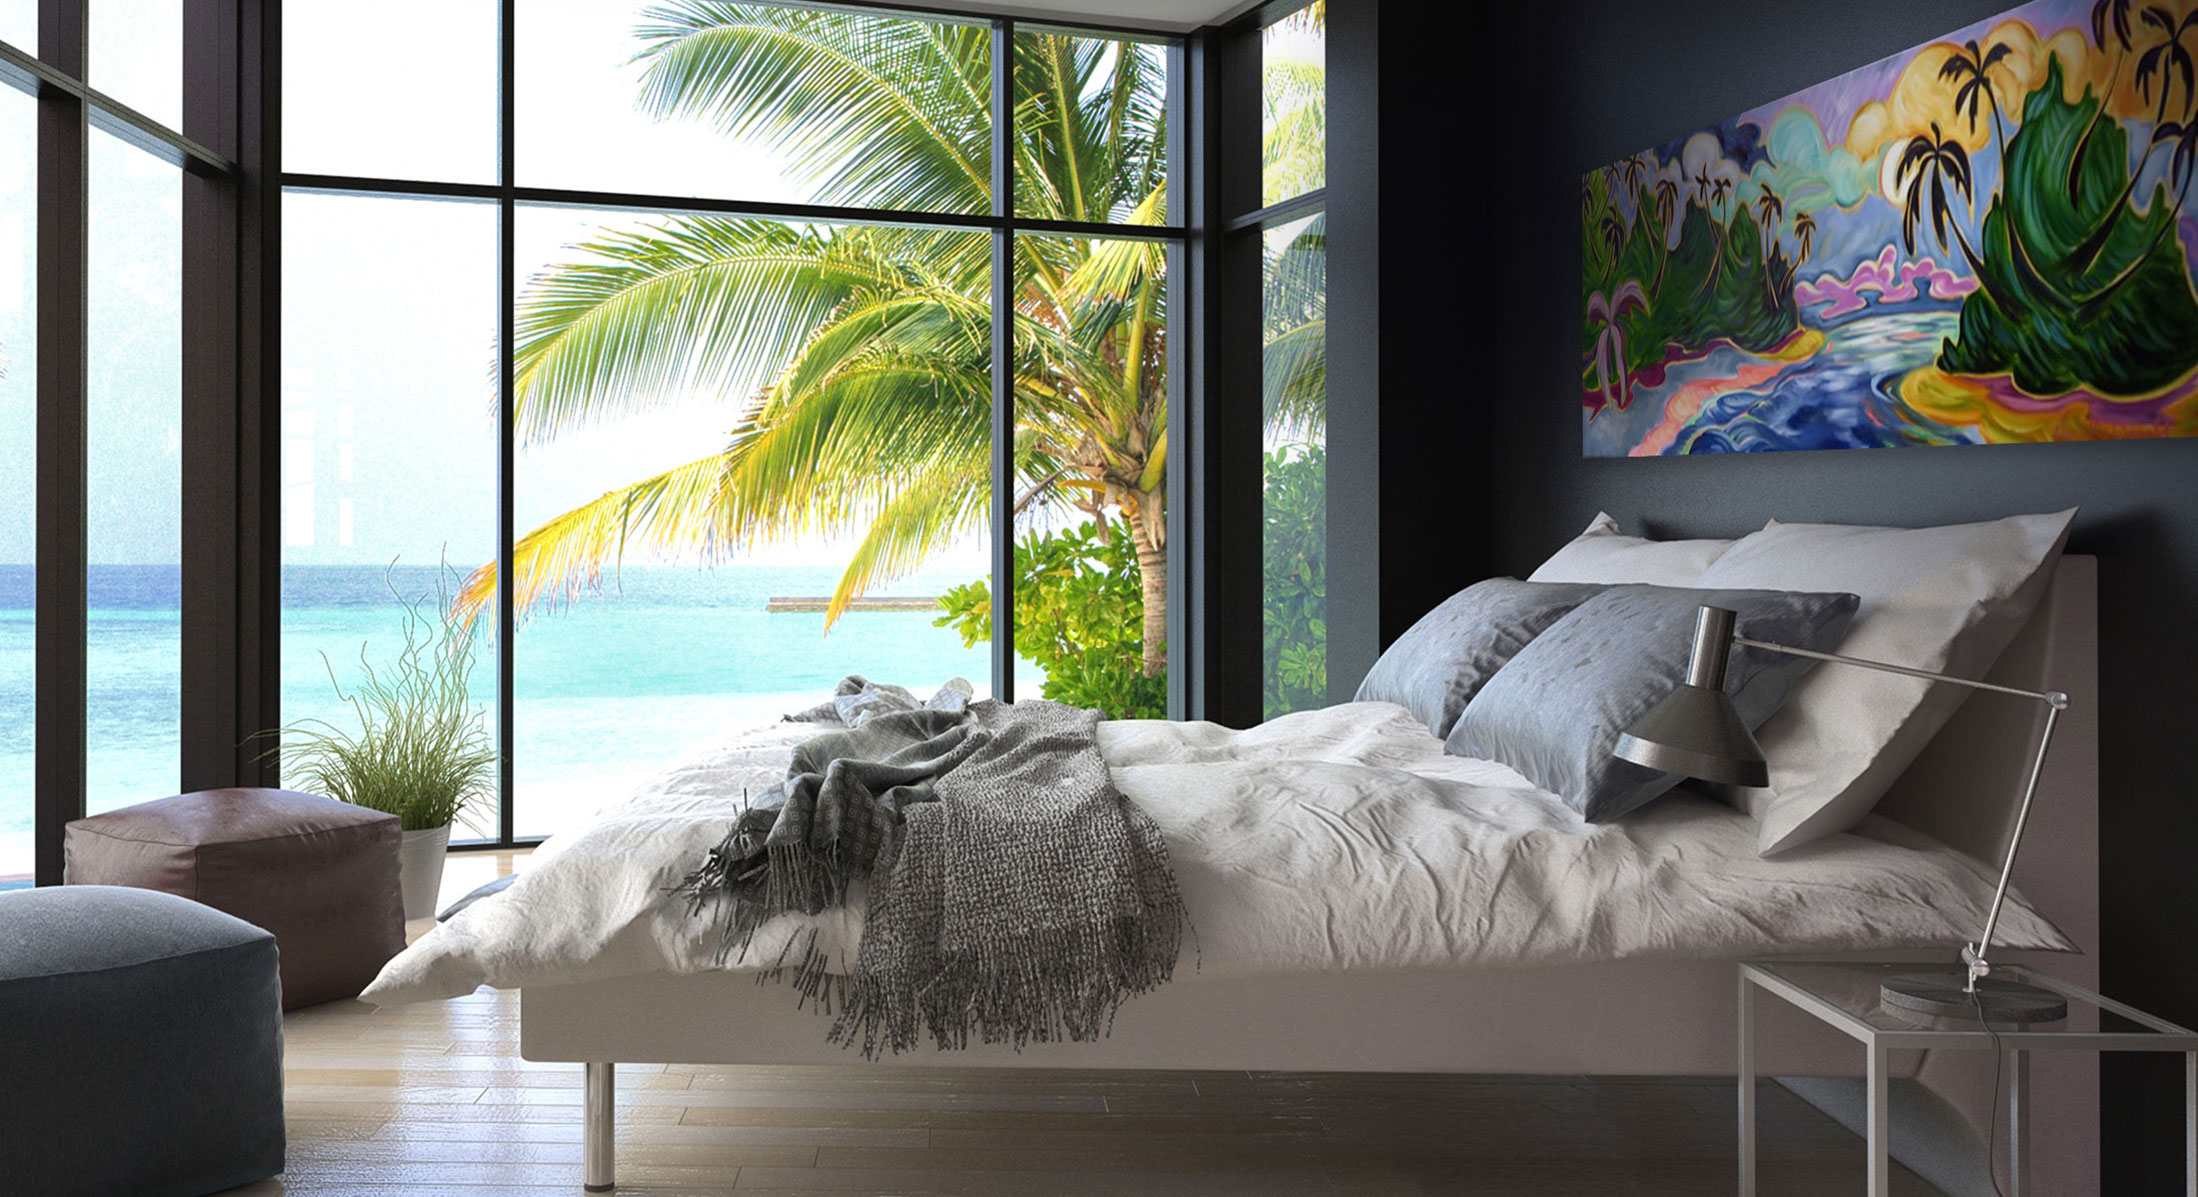 Kim-McDonald-Artist---Painting-in-Maui-Bedroom (1).jpg